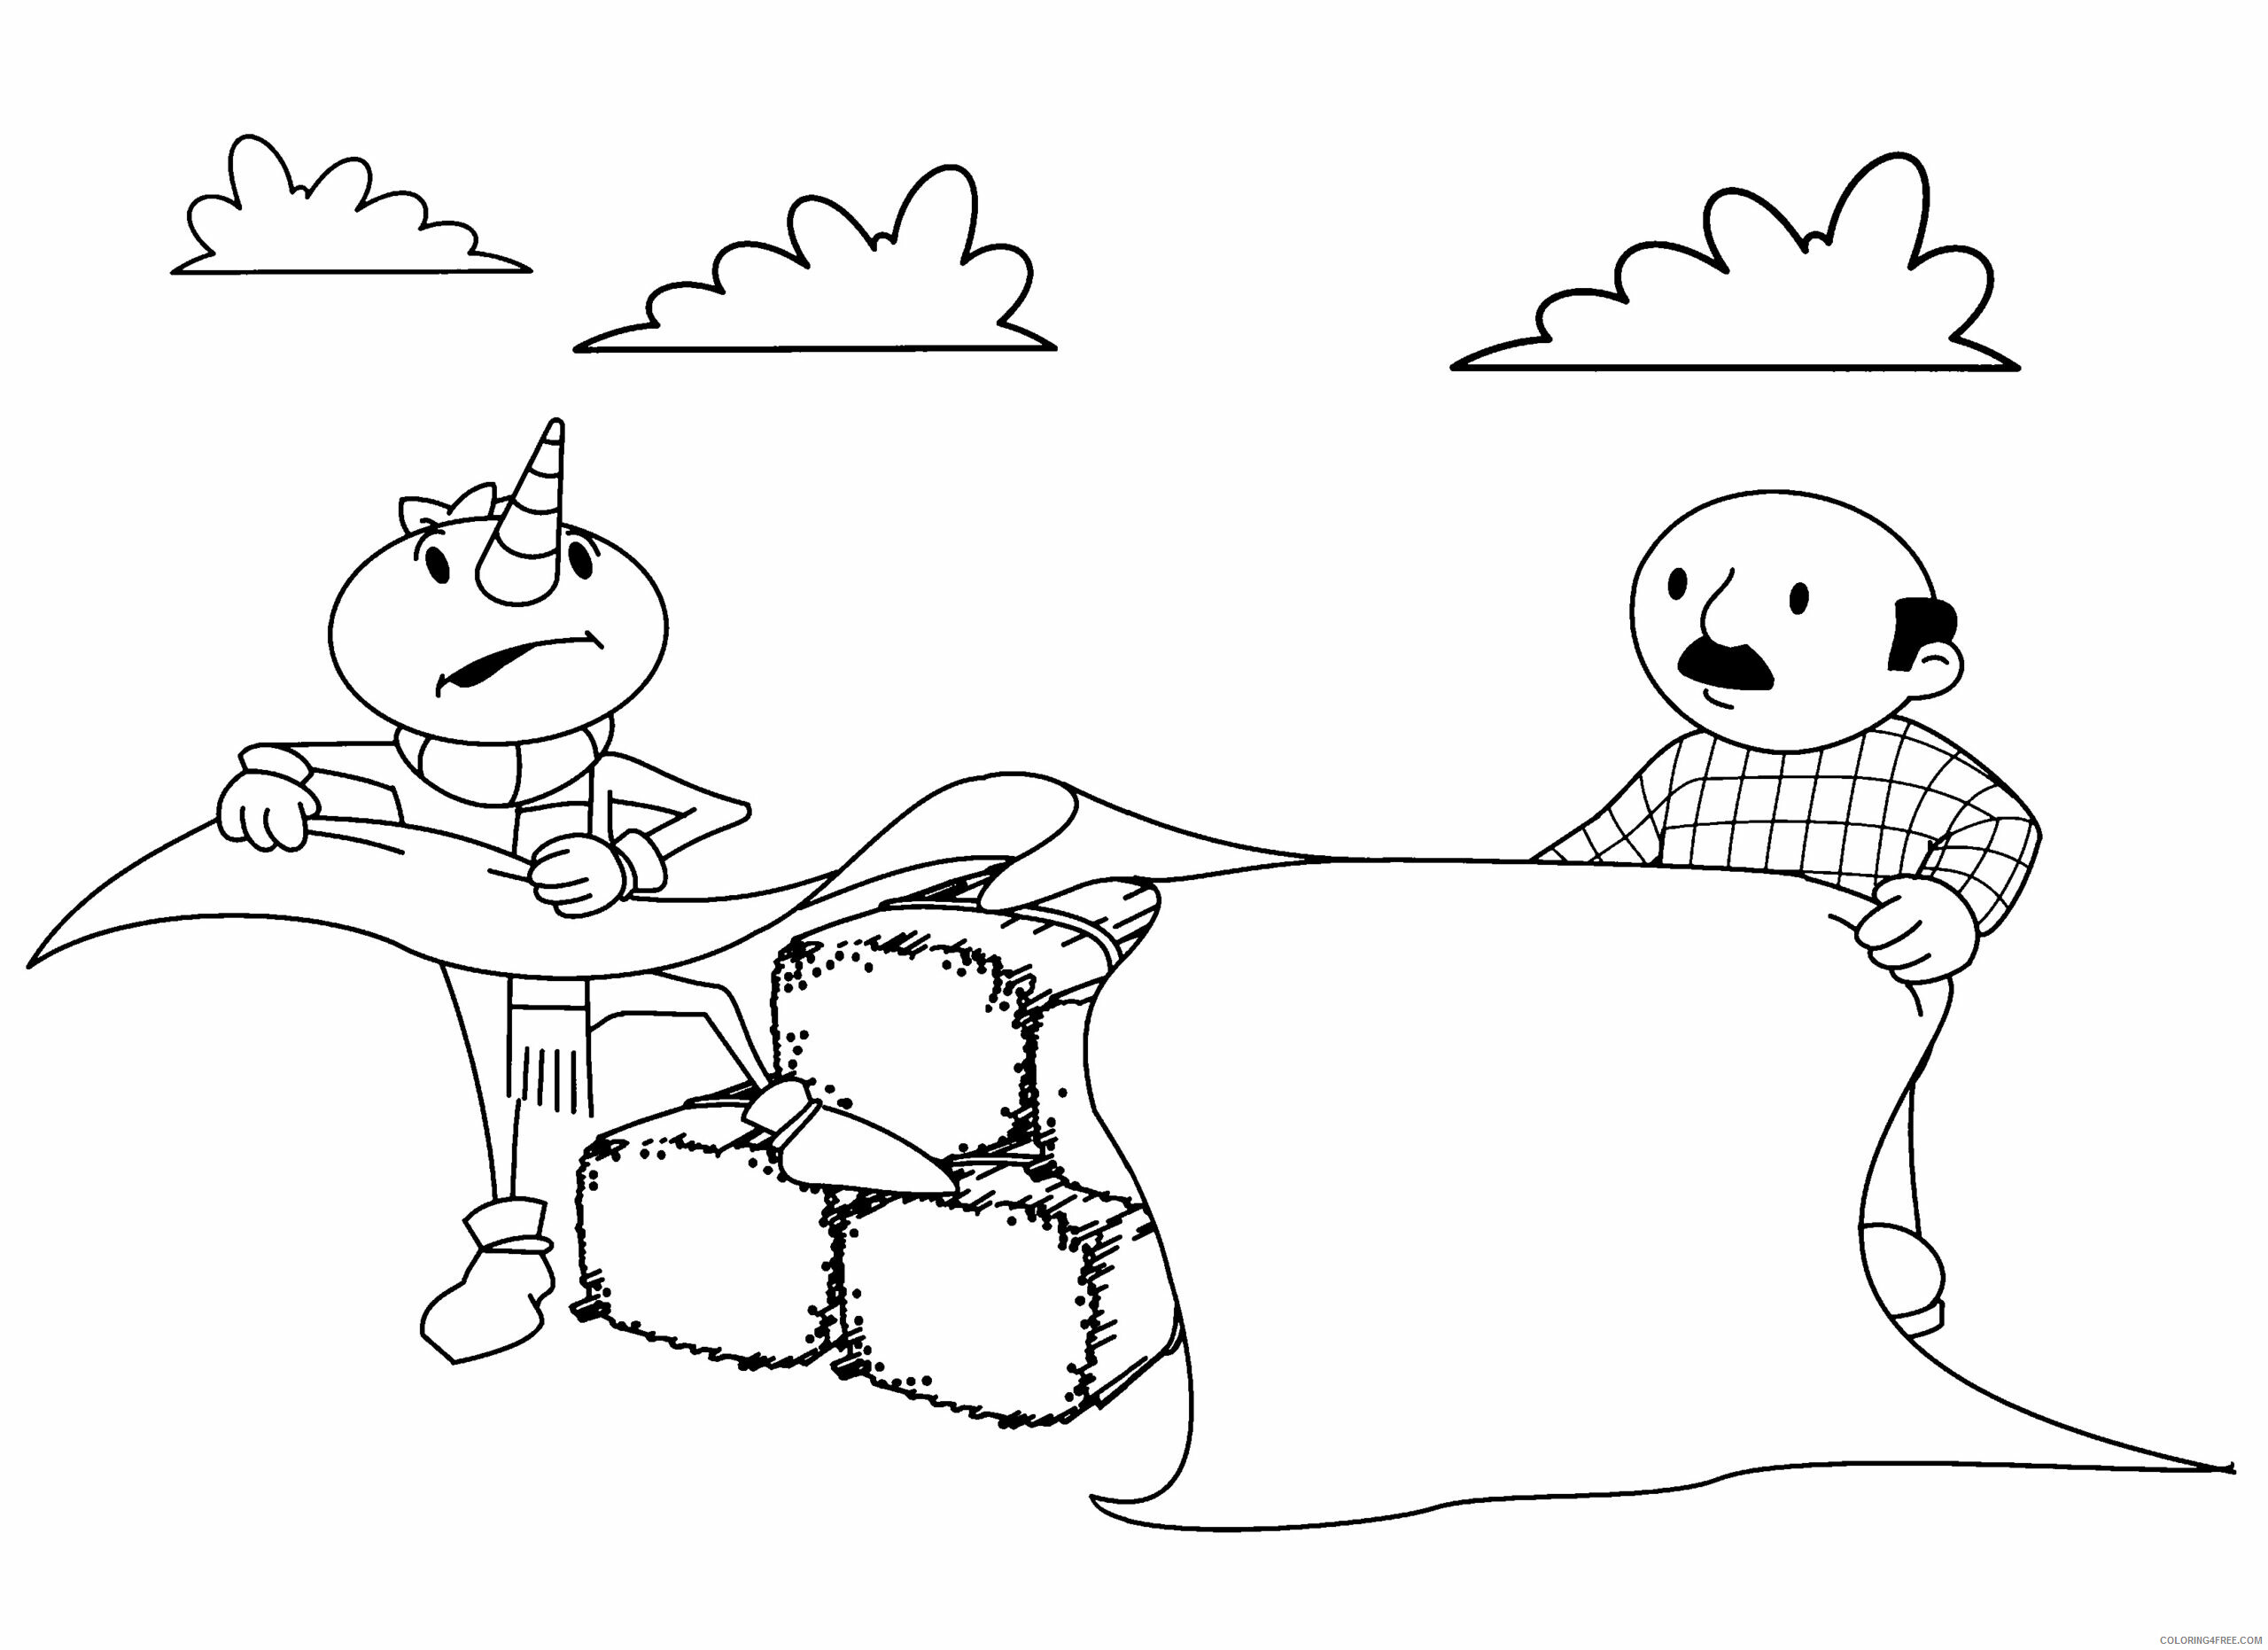 Bob the Builder Coloring Pages TV Film bob the builder 52 Printable 2020 01072 Coloring4free